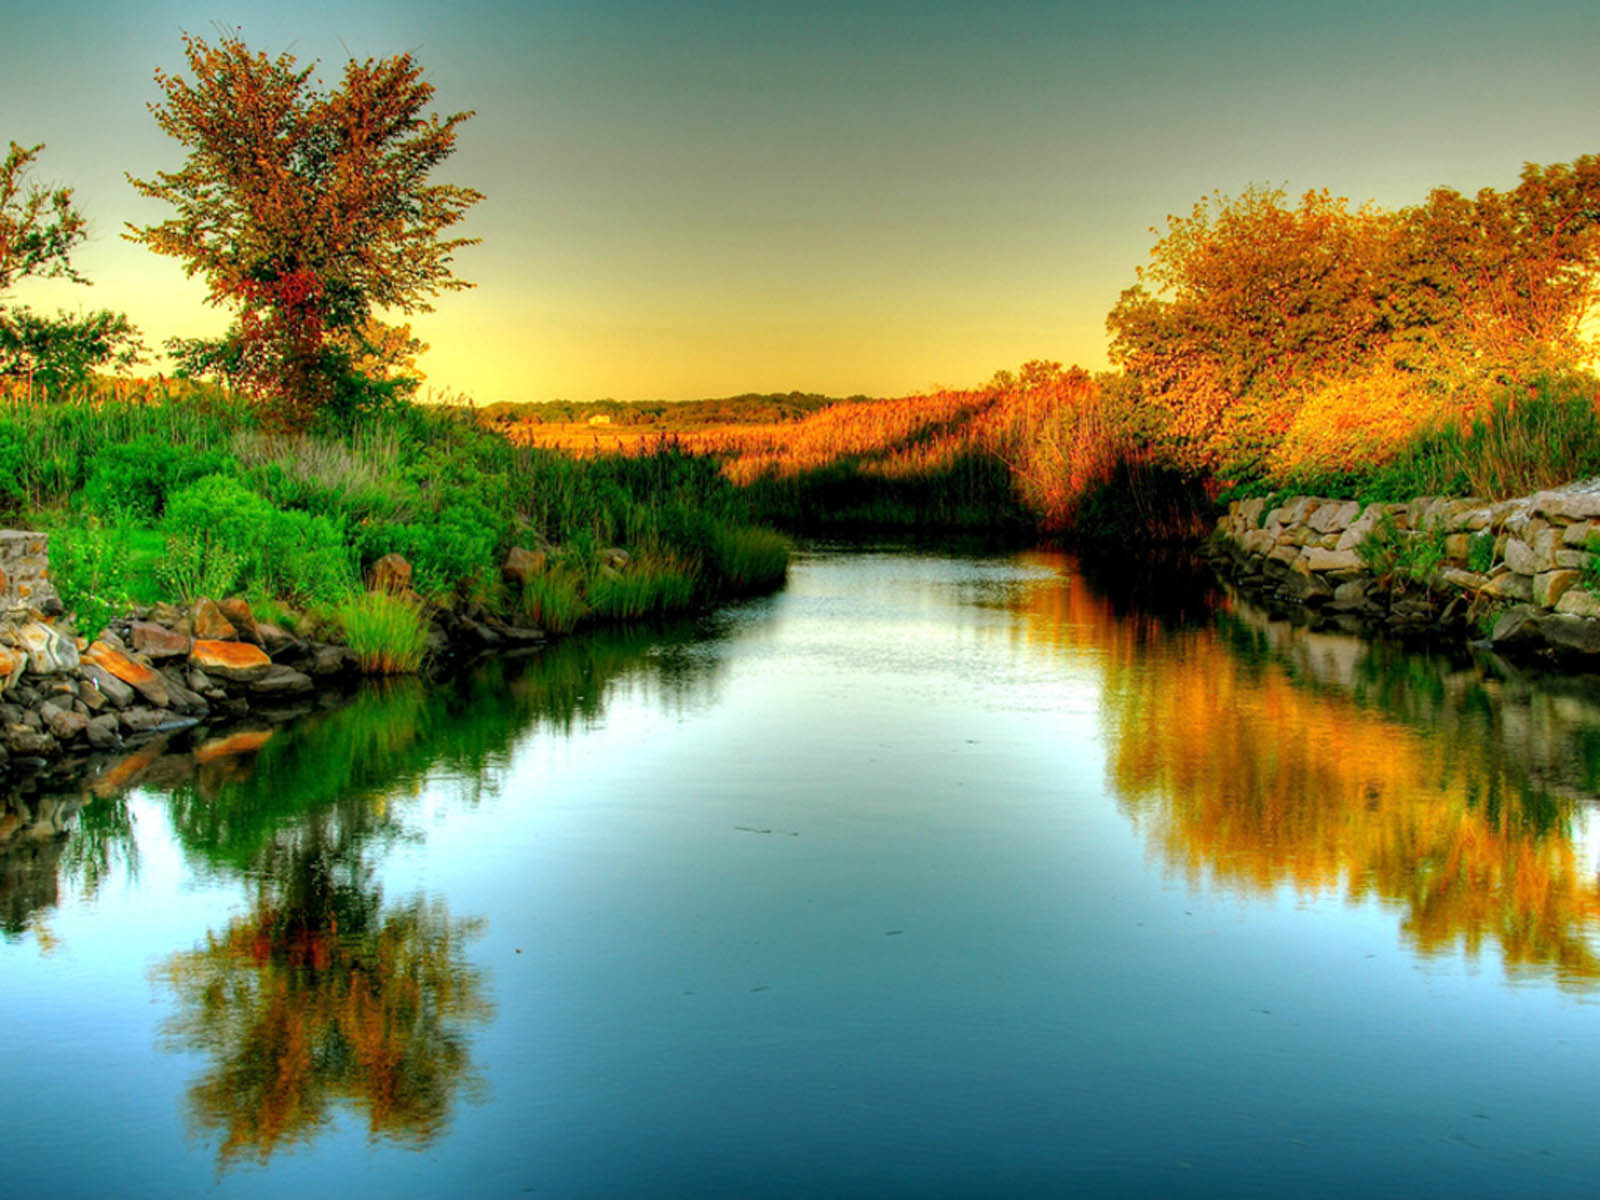 Tag: River Wallpapers, Images, Photos, Pictures and Backgrounds for